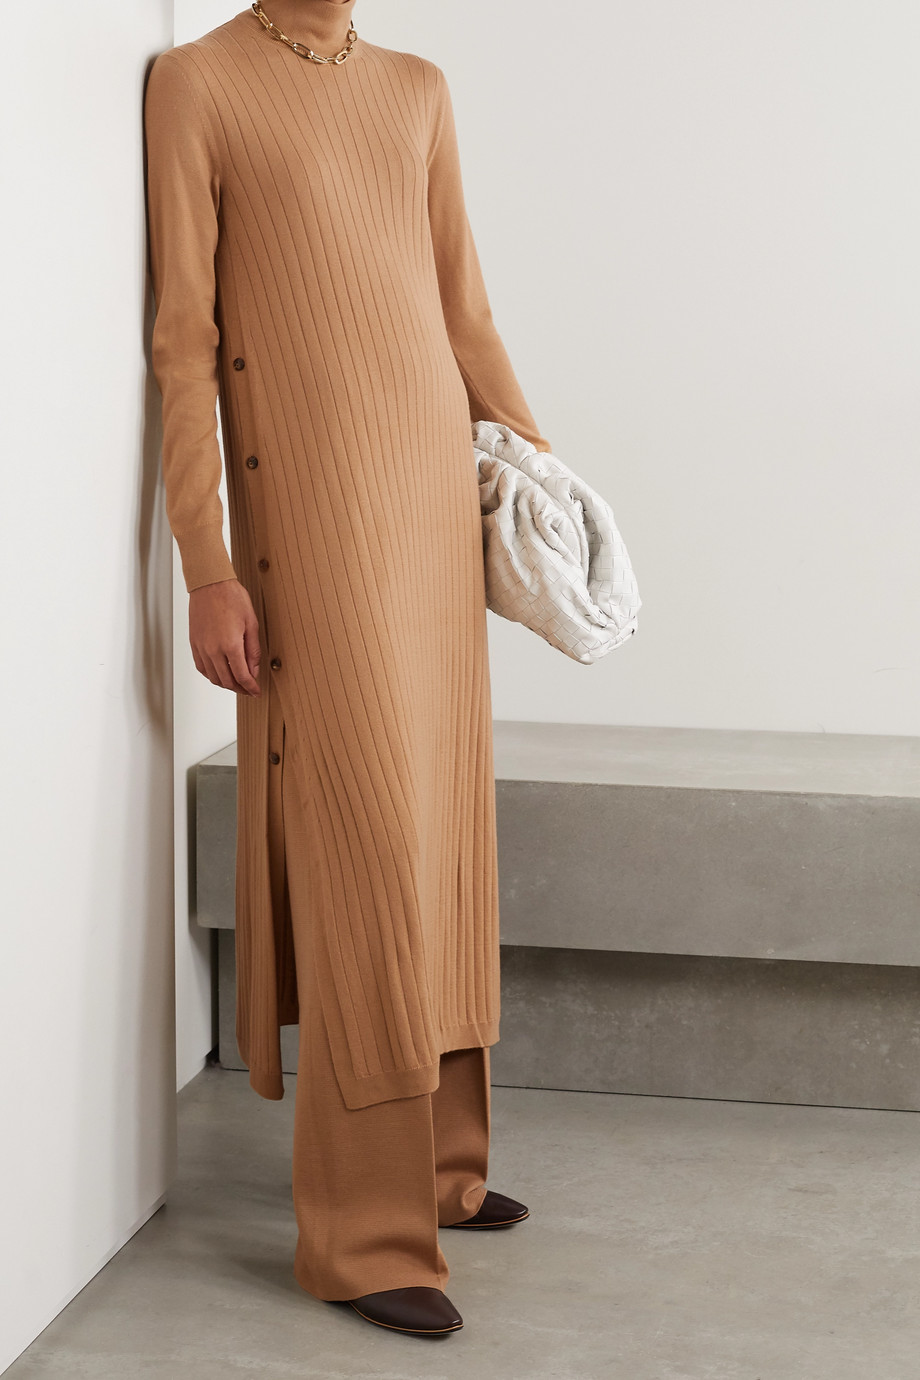 Loro Piana Times Square ribbed cashmere turtleneck midi dress